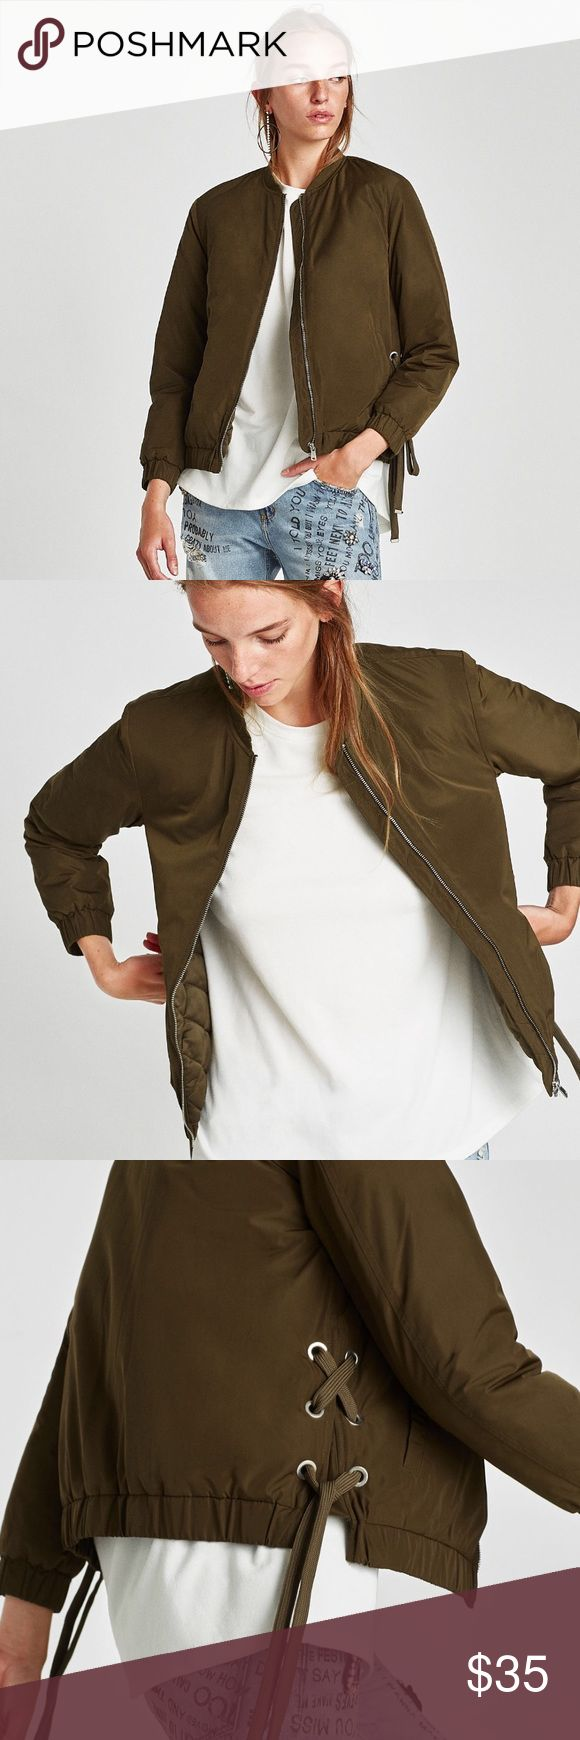 Zara bomber jacket with bows 😎 In good condition!   Has only been worn a few times  Retails for $50 USD  I'm open to reasonable offers ONLY   Super cute! I get a lot of compliments Zara Jackets & Coats